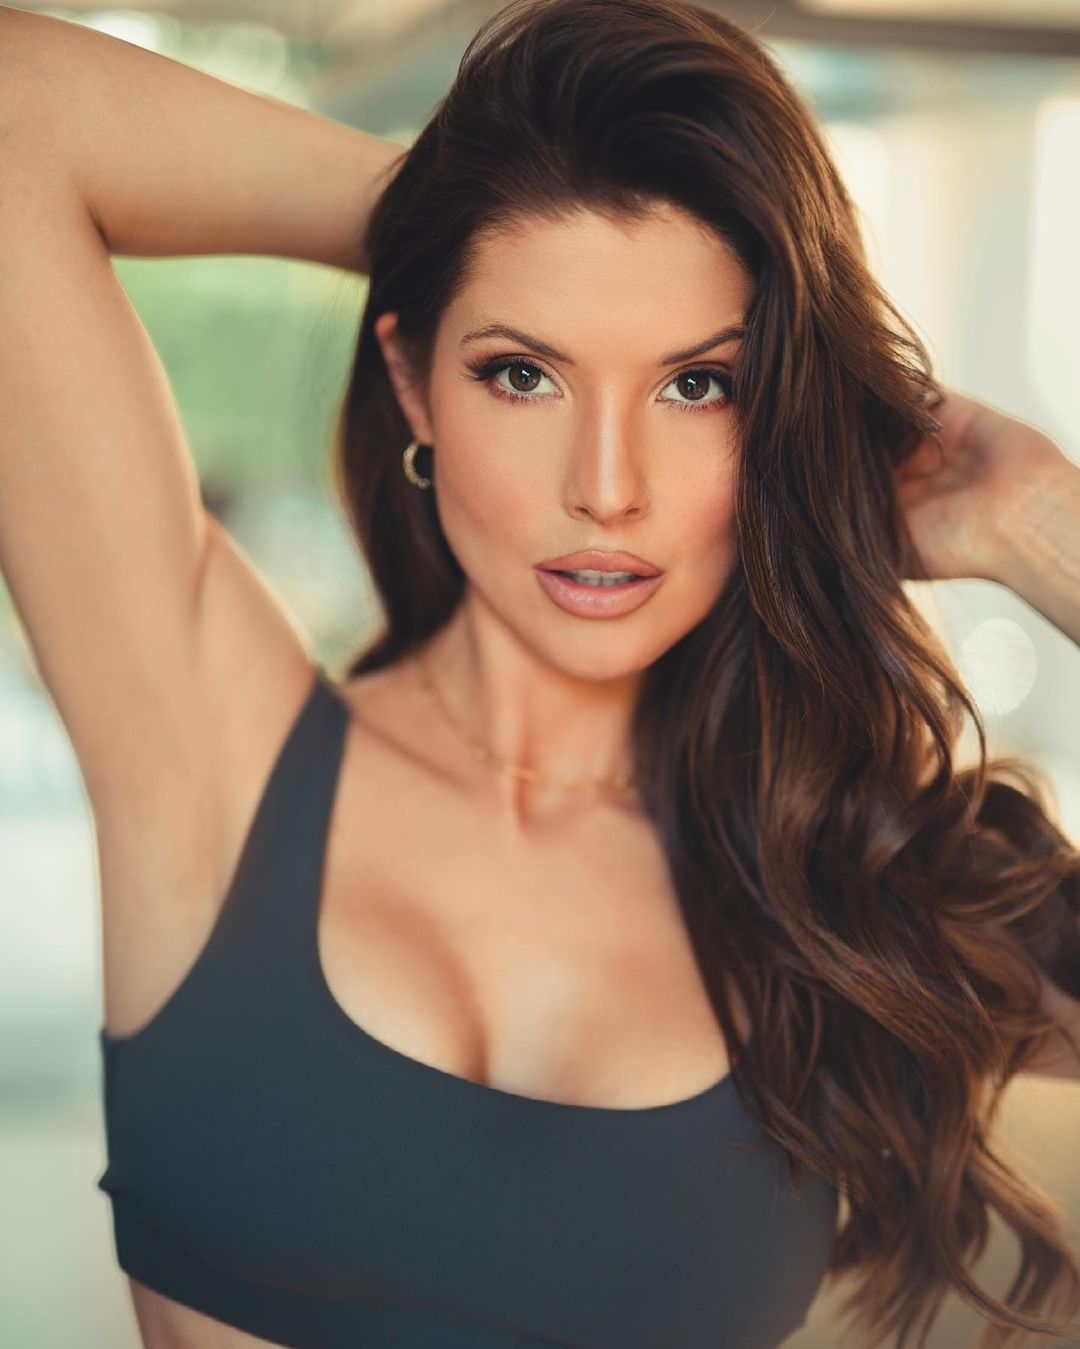 Hot photos of Playboy model and actress Amanda Cerny will take your breath away 2